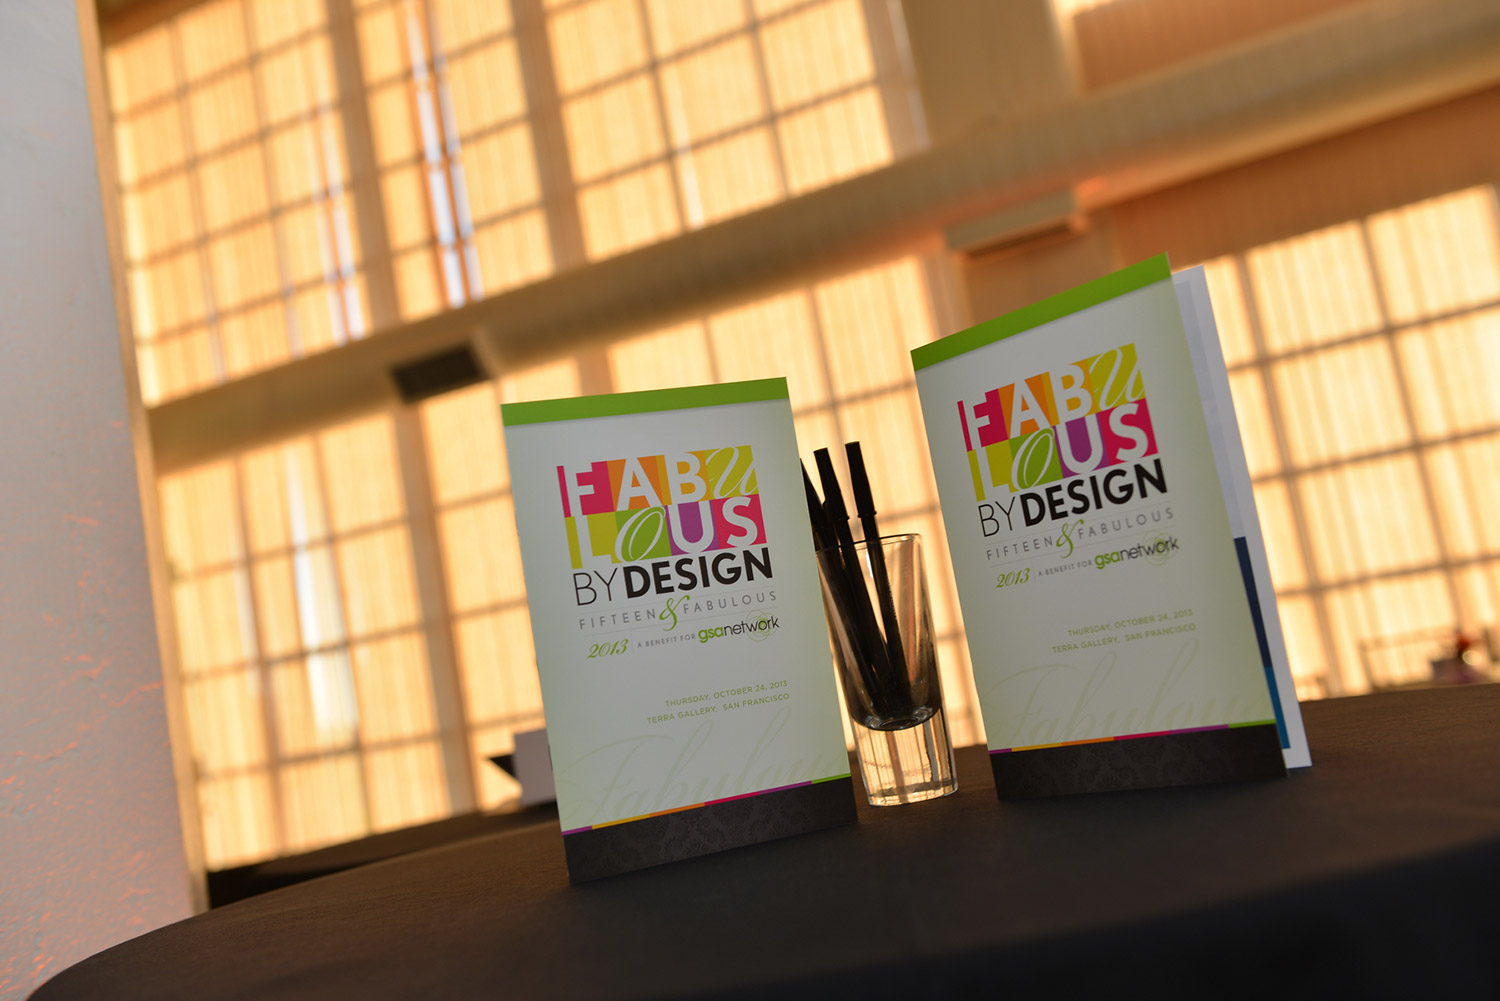 GSA Fabulous by Design 2013